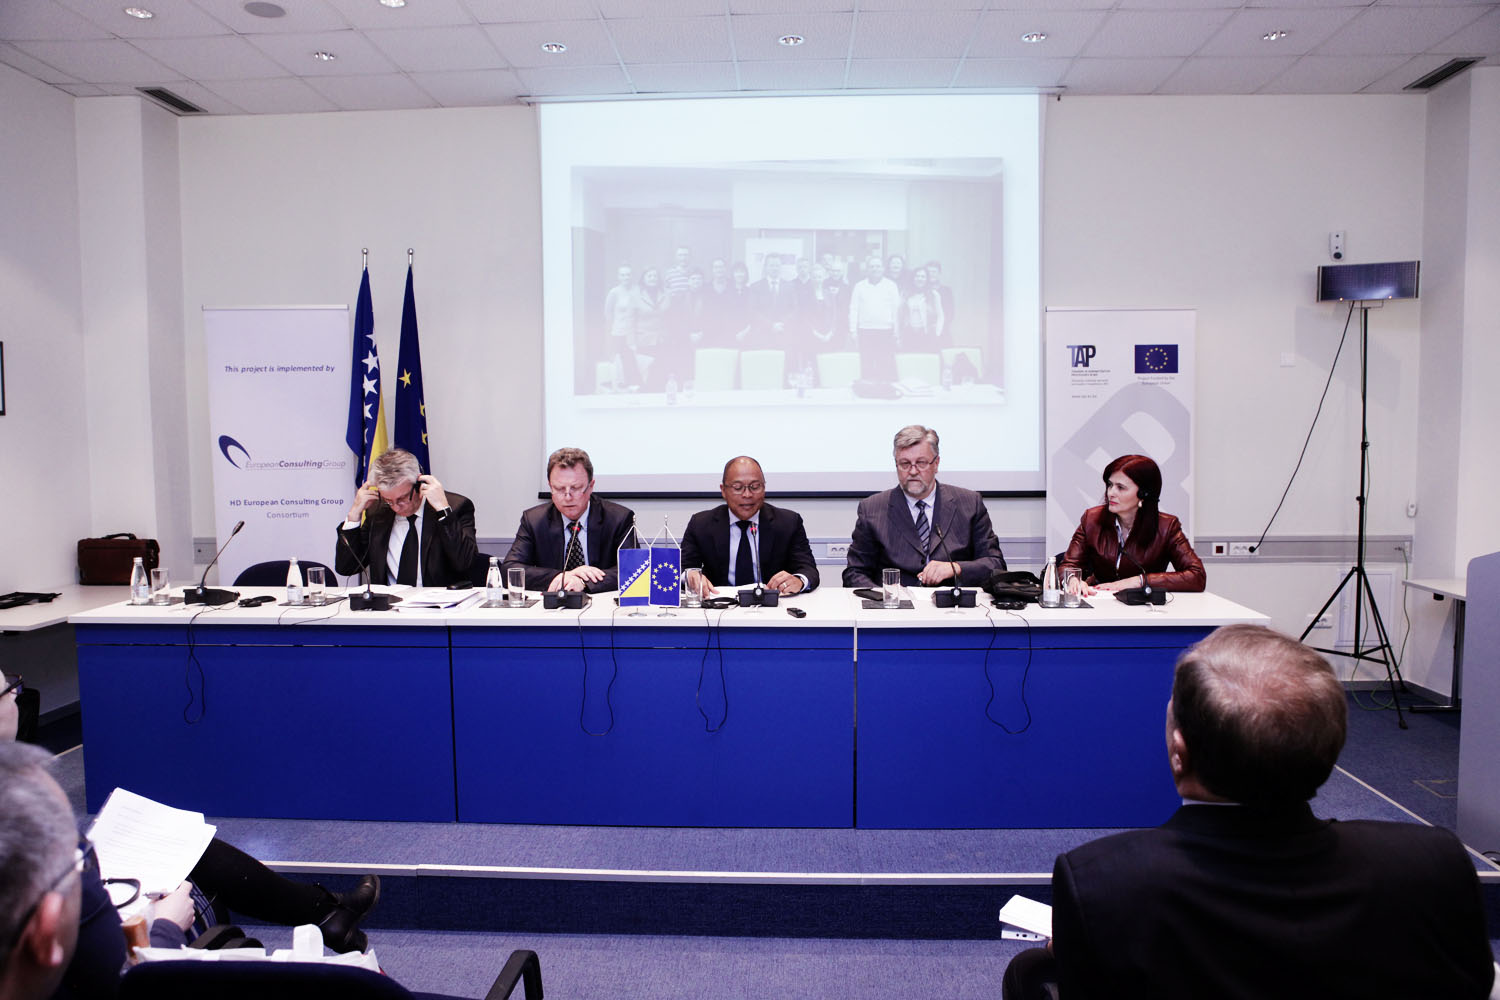 Effective public administration system adhering to EU regulations is crucial for EU membership, EU conference highlights